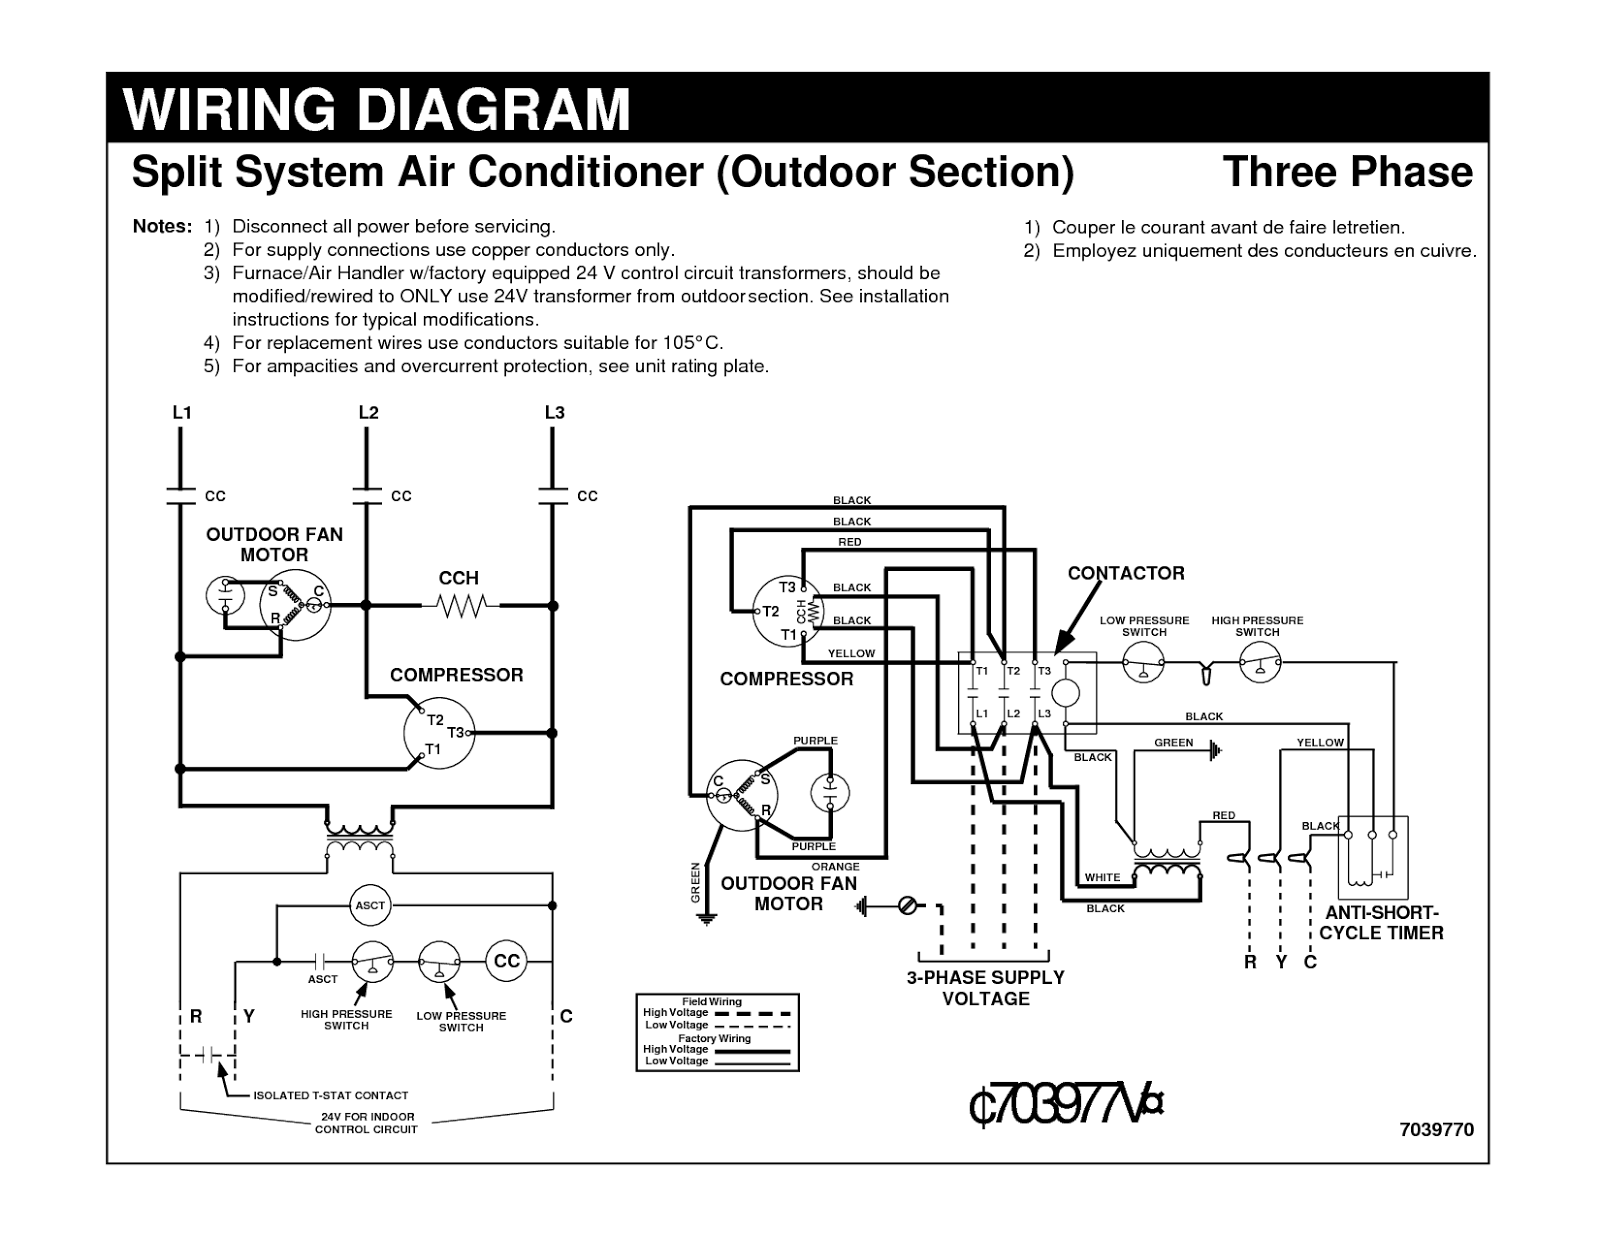 wiring+diagram+in+the+user+manual red dot air conditioner wiring diagram air handler wiring diagram panasonic fv 11vhl2 wiring diagram at gsmportal.co